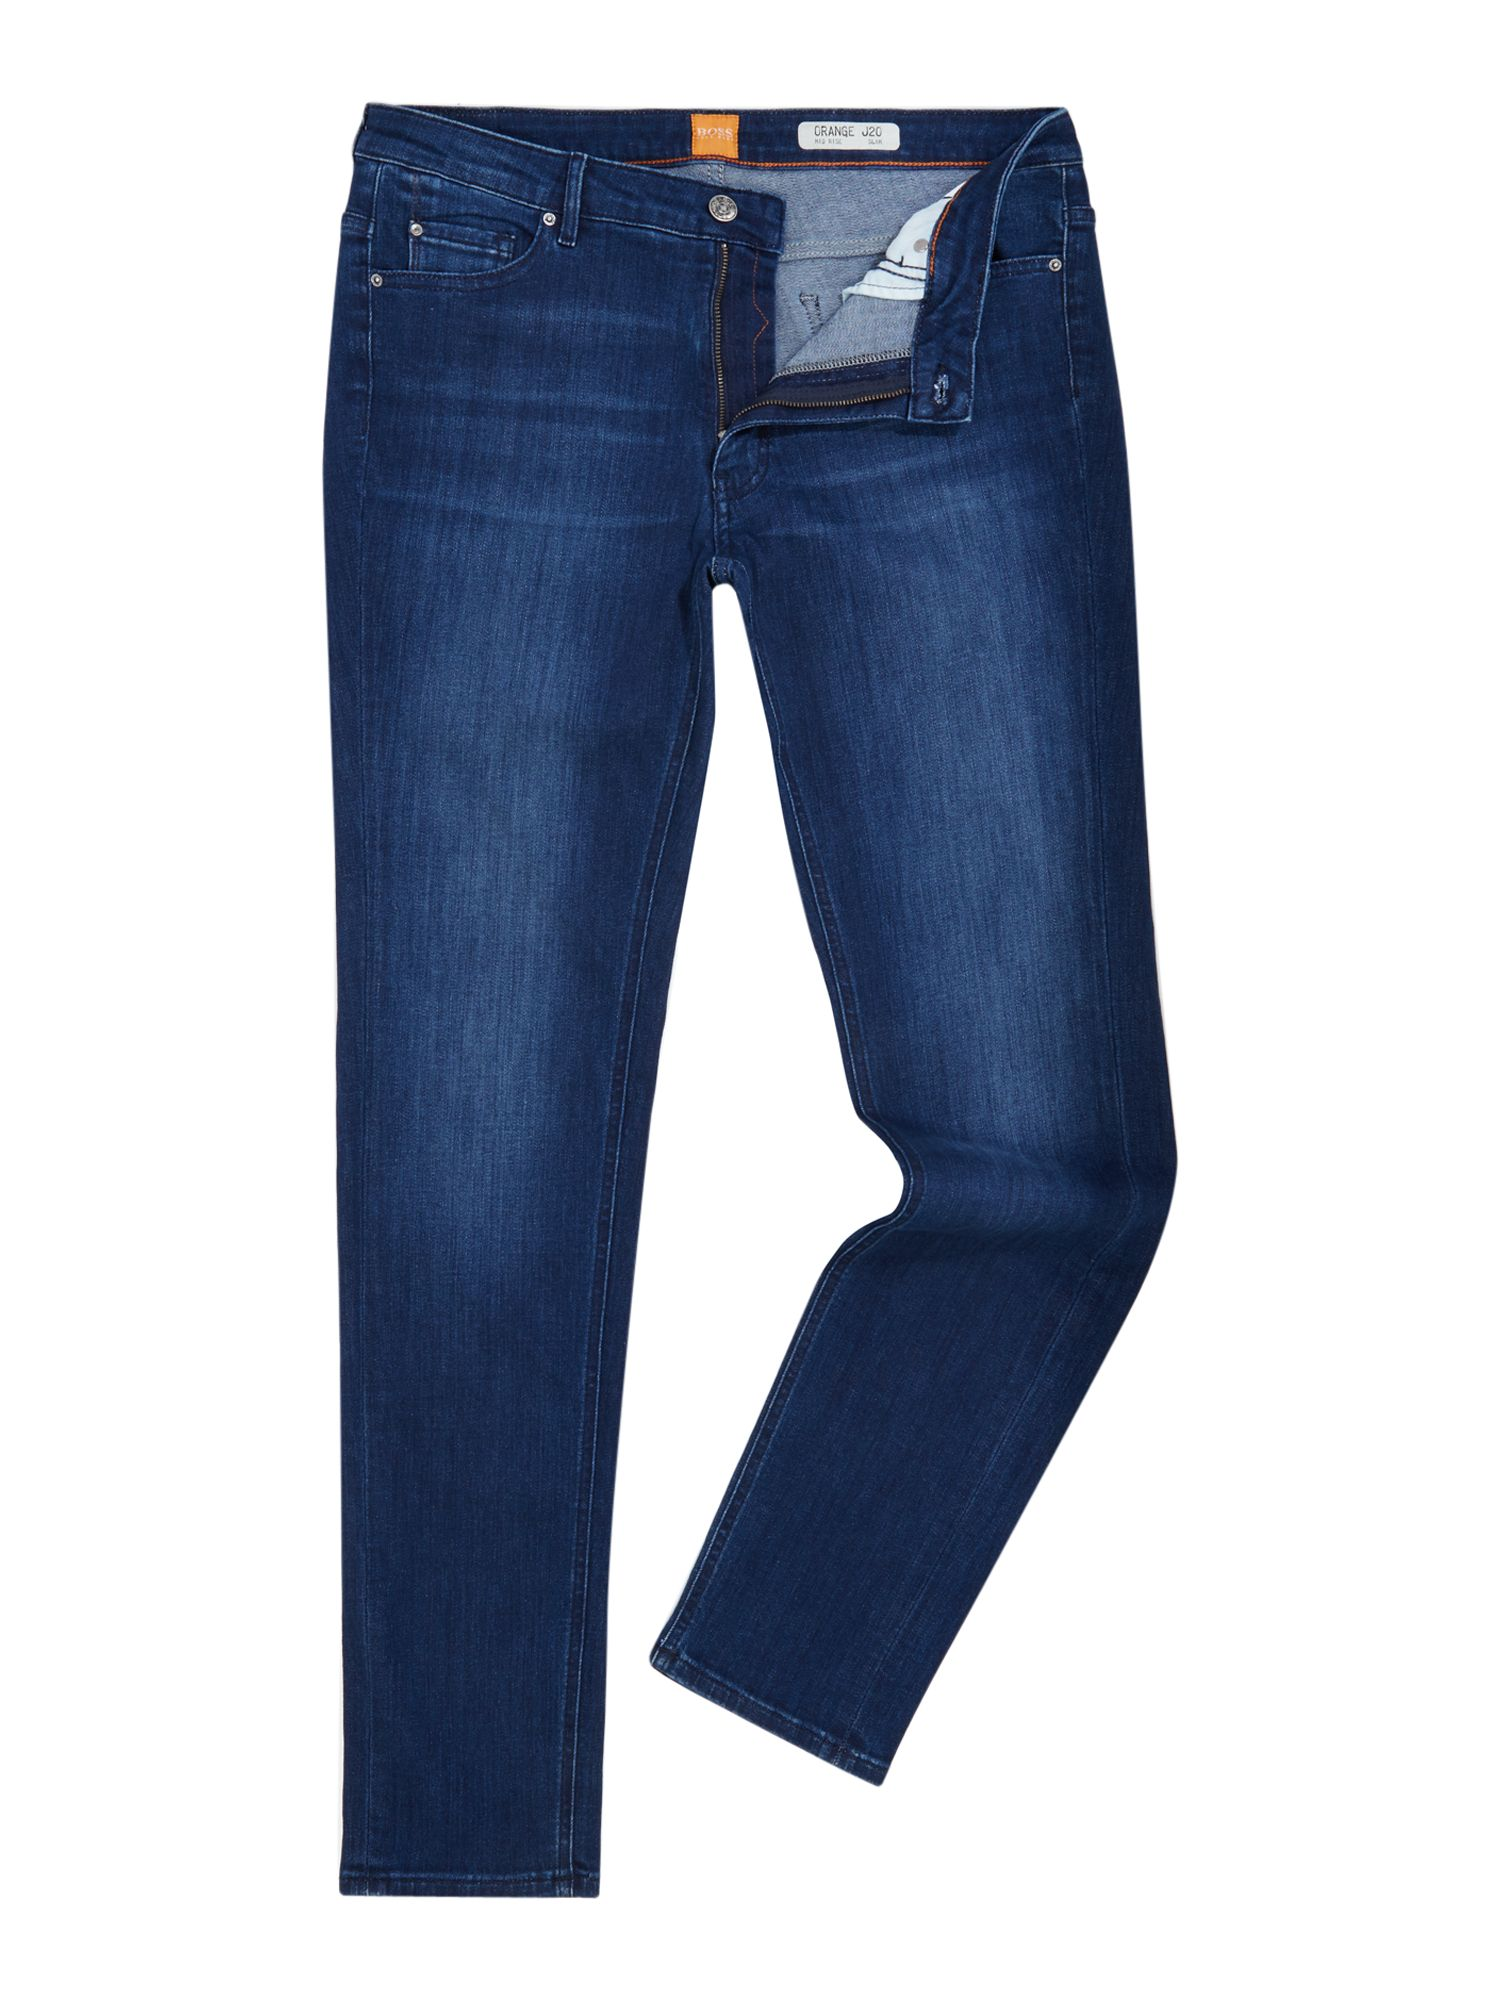 Hugo Boss Orange J20 Skinny Jean in Navy, Blue